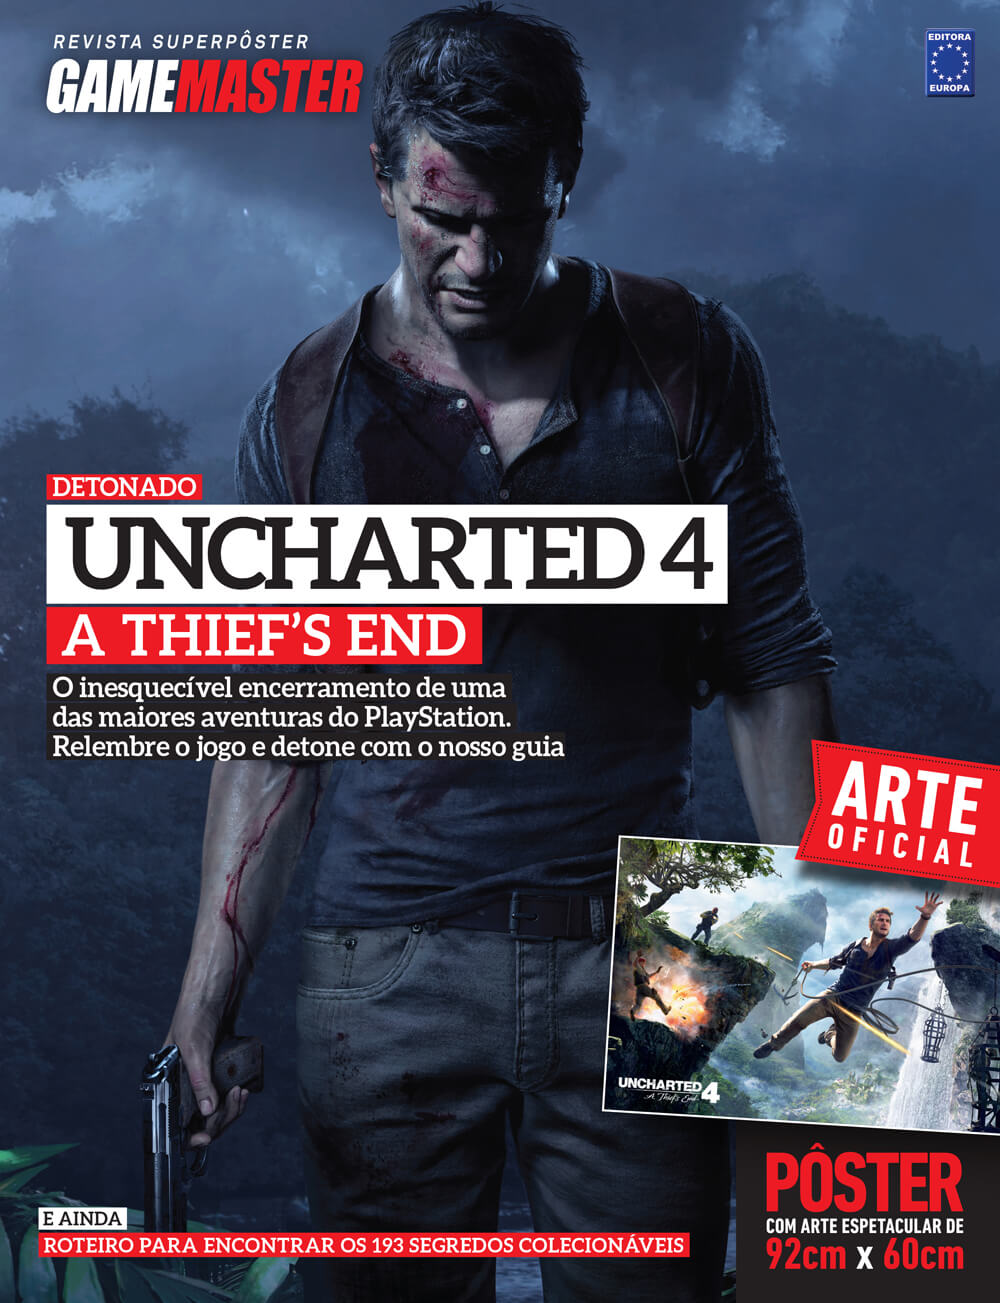 Revista Superpôster - Uncharted 4